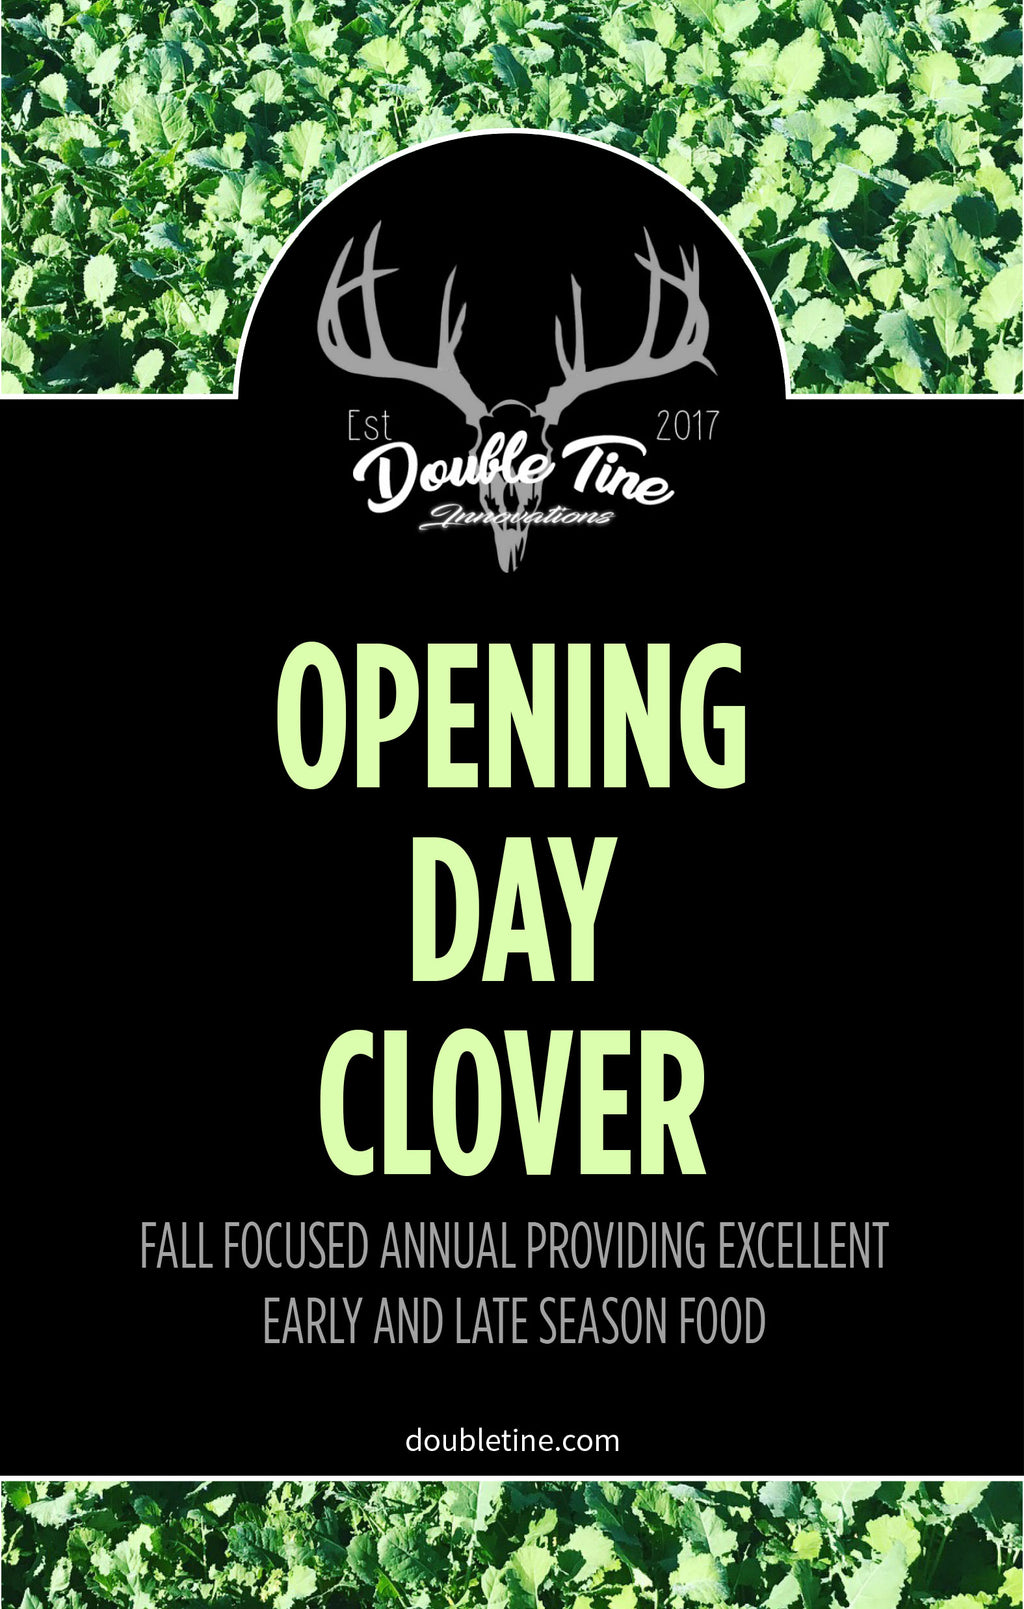 Opening Day Clover